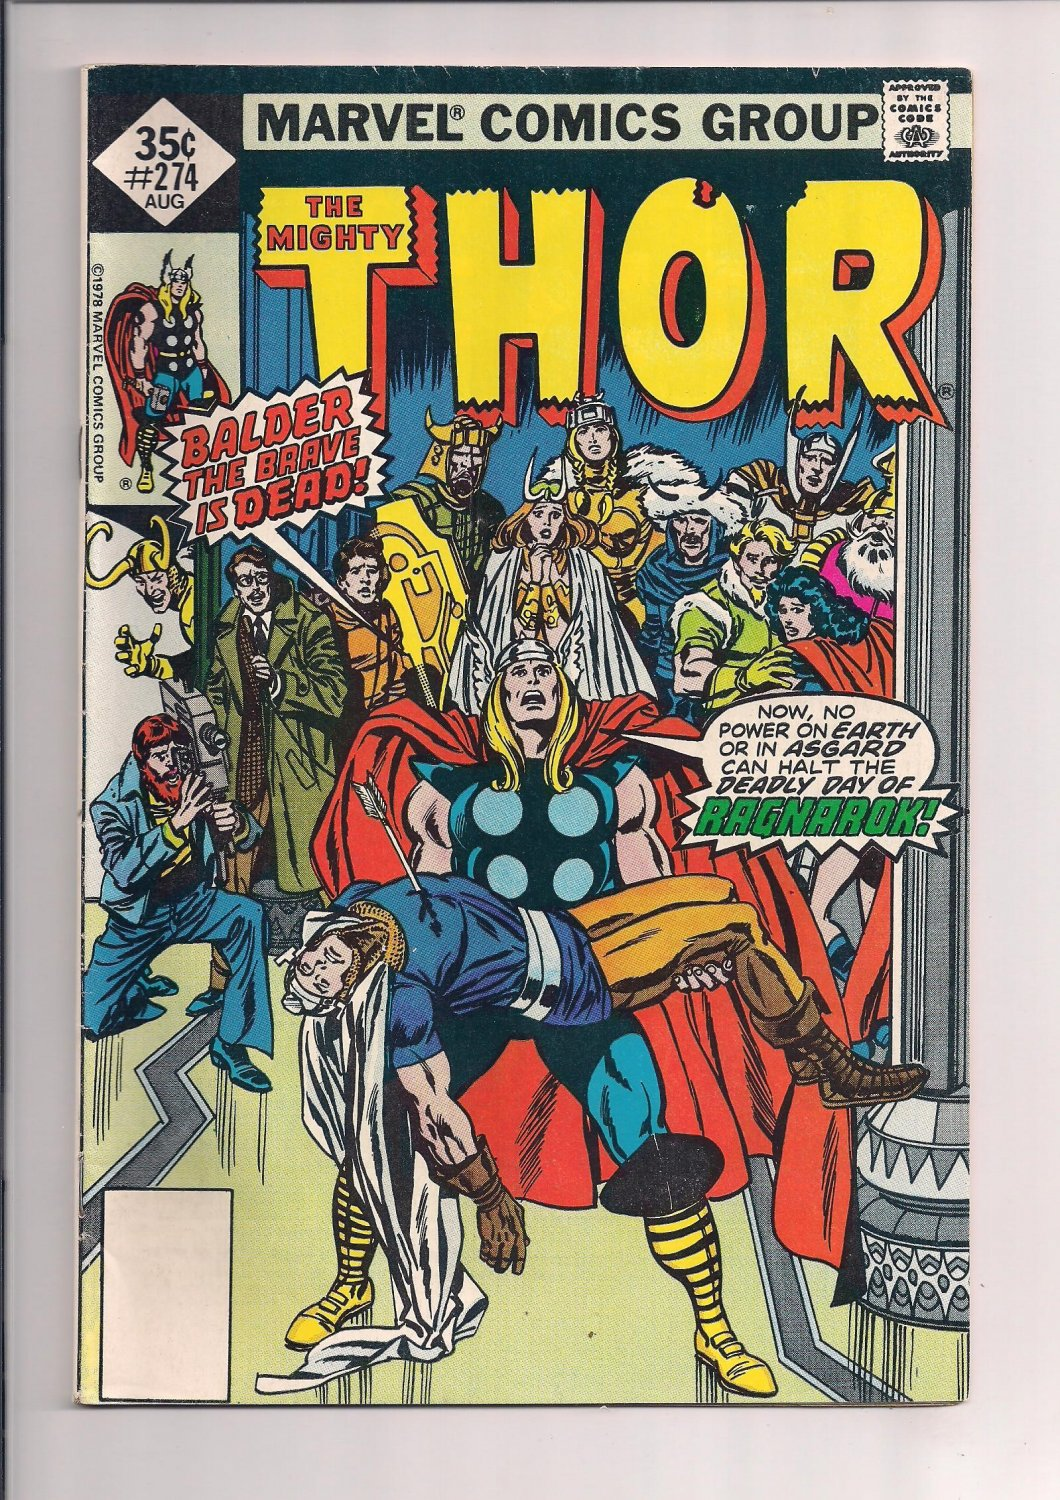 Thor #274 (1978) Death of Balder very fine condition or better sh3